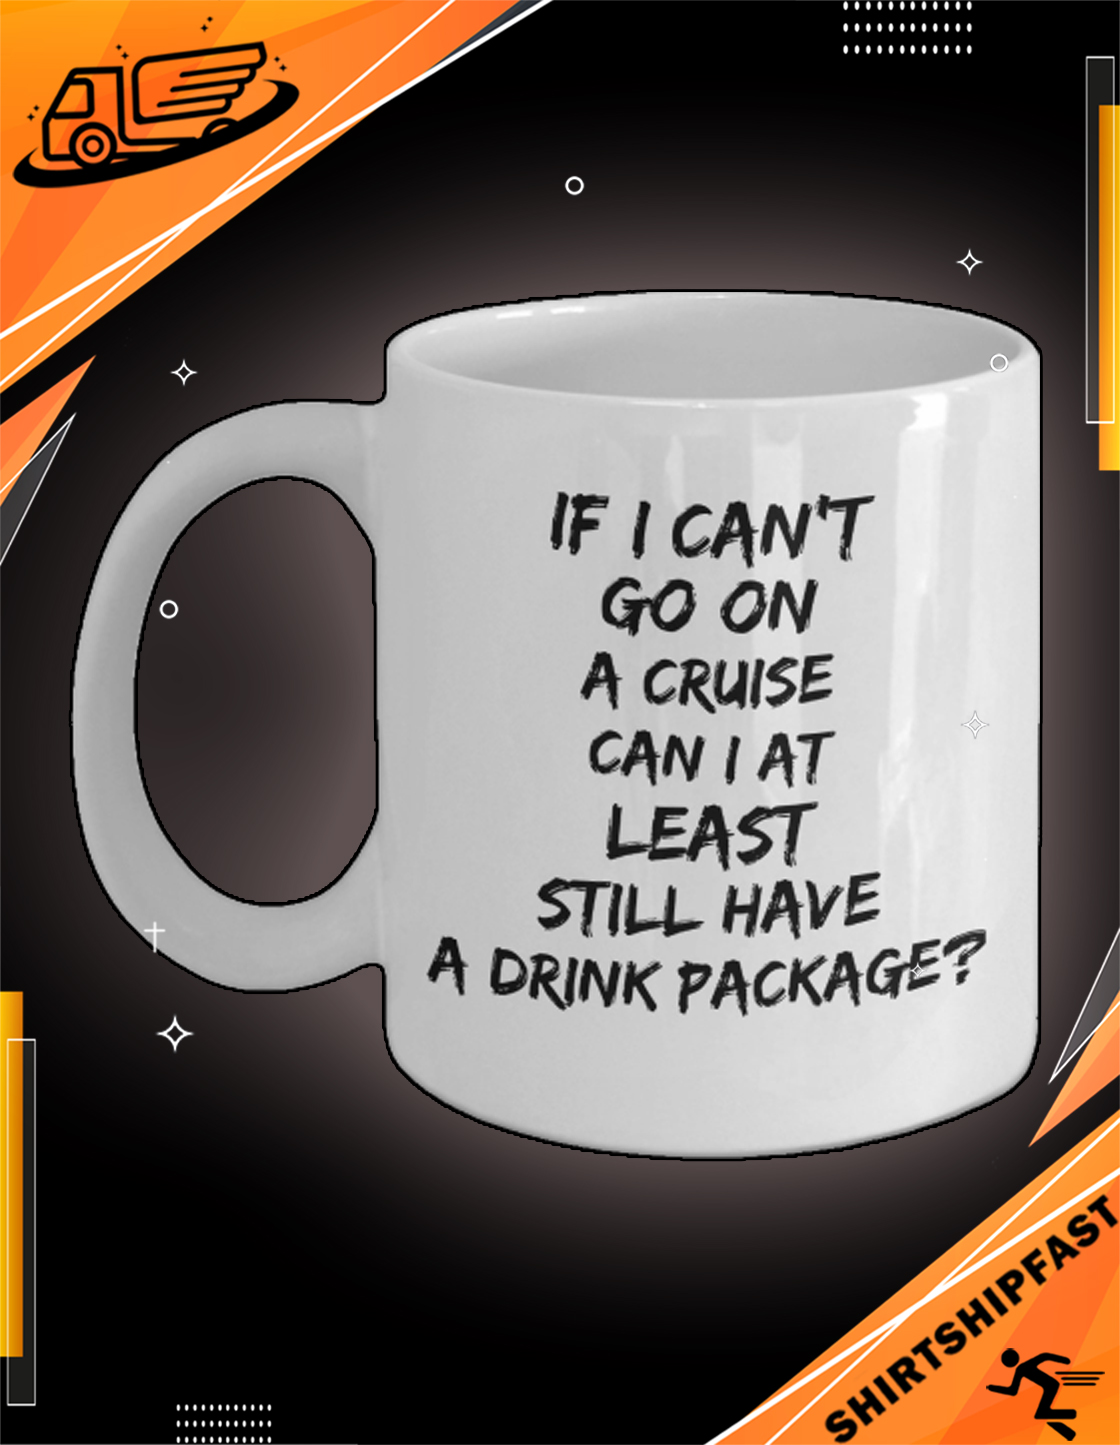 If I can't go on a cruise can I at least still have a drink package mug - Picture 3